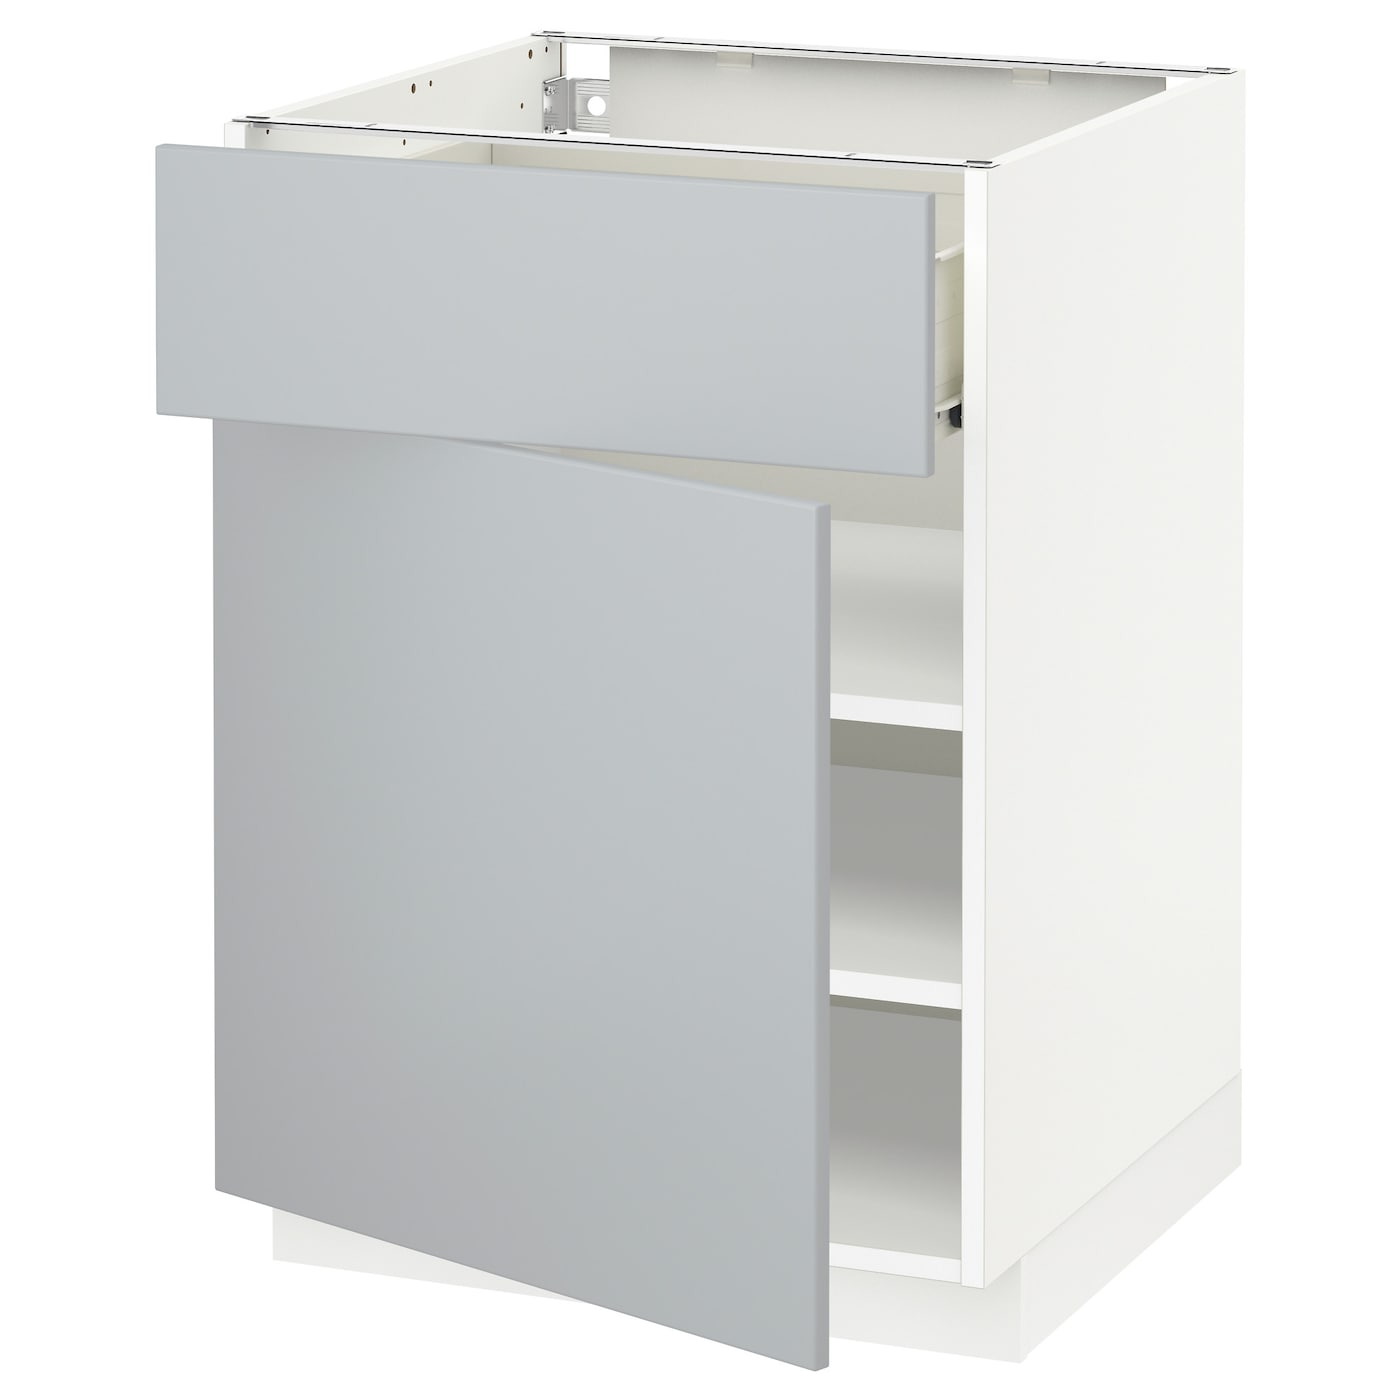 metod f rvara base cabinet with drawer door white veddinge grey 60x60 cm ikea. Black Bedroom Furniture Sets. Home Design Ideas